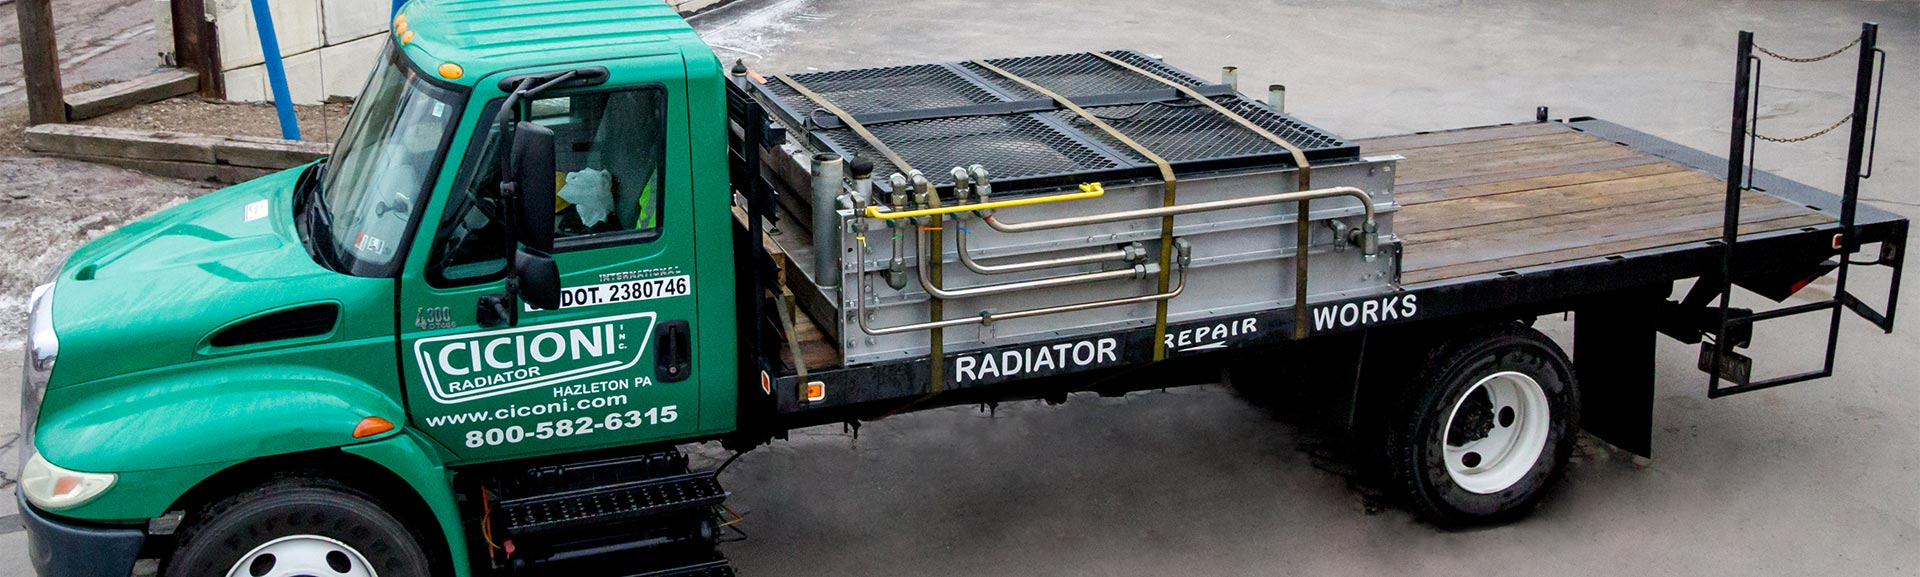 Hydraulic fracturing fracking radiator repair and service on-site